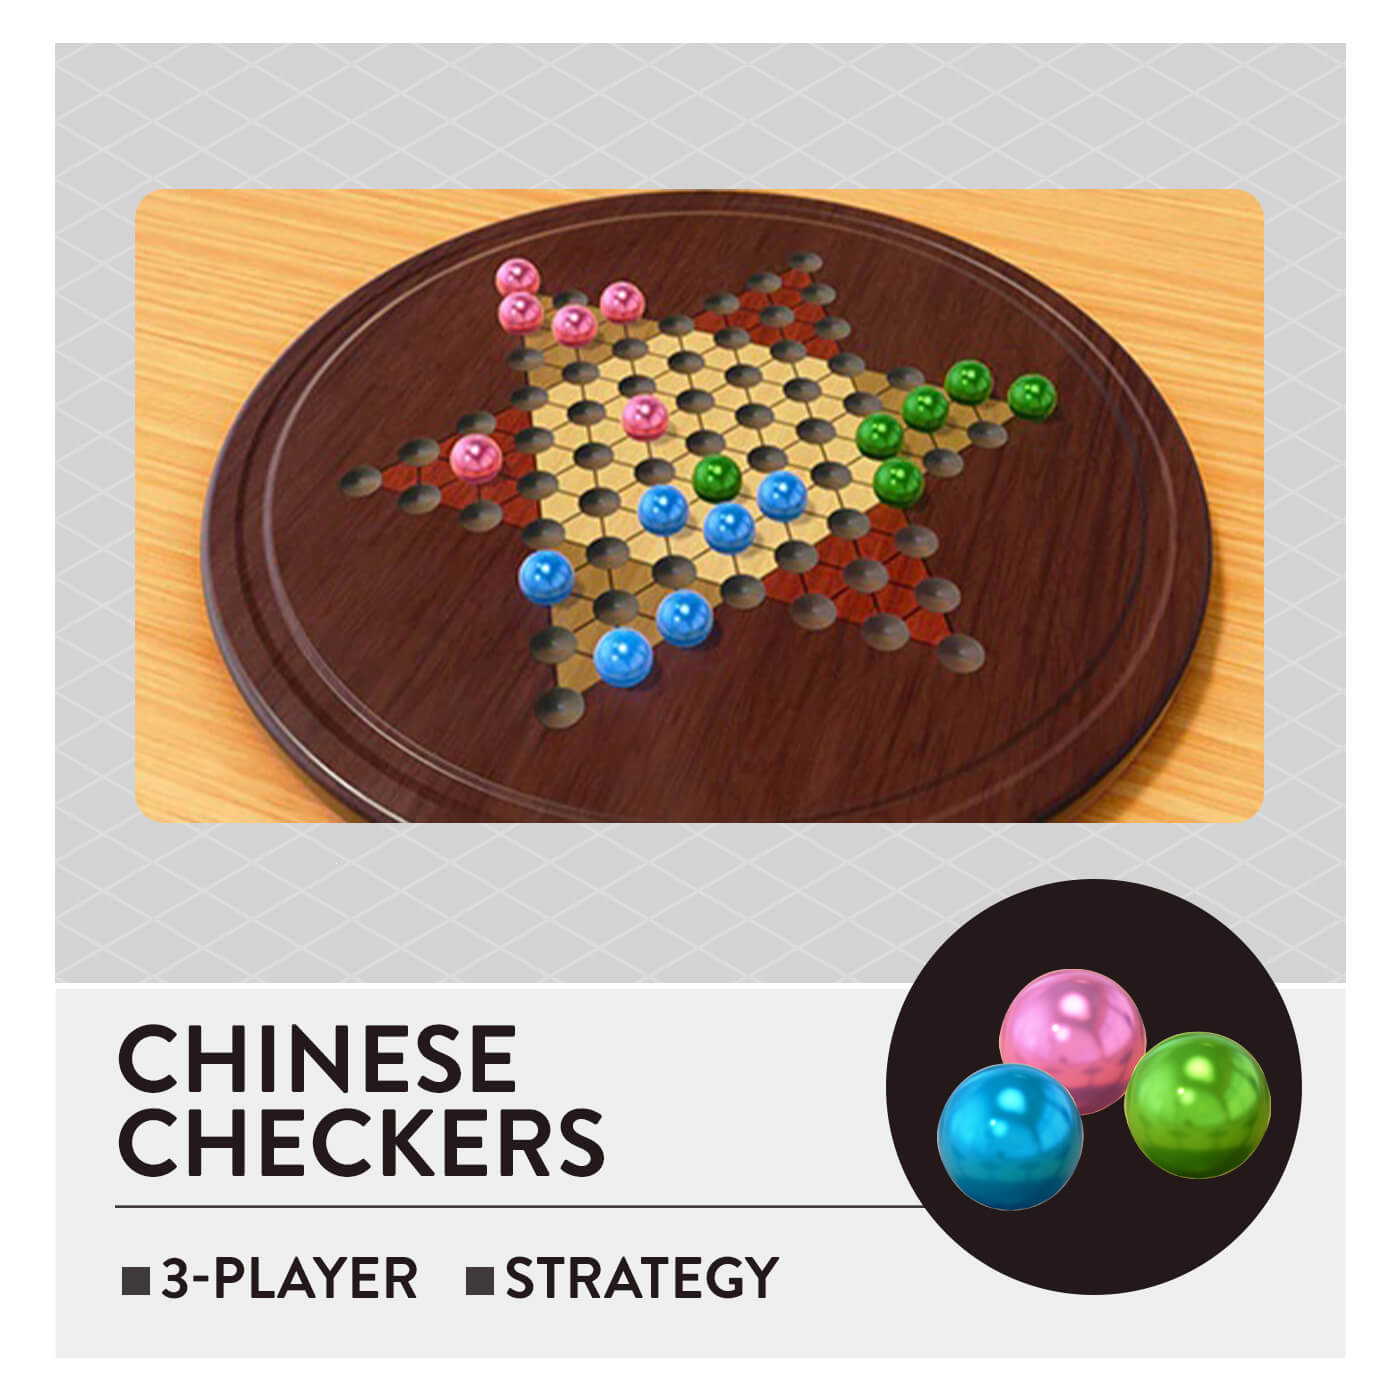 51 Worldwide Games - Chinese Checkers